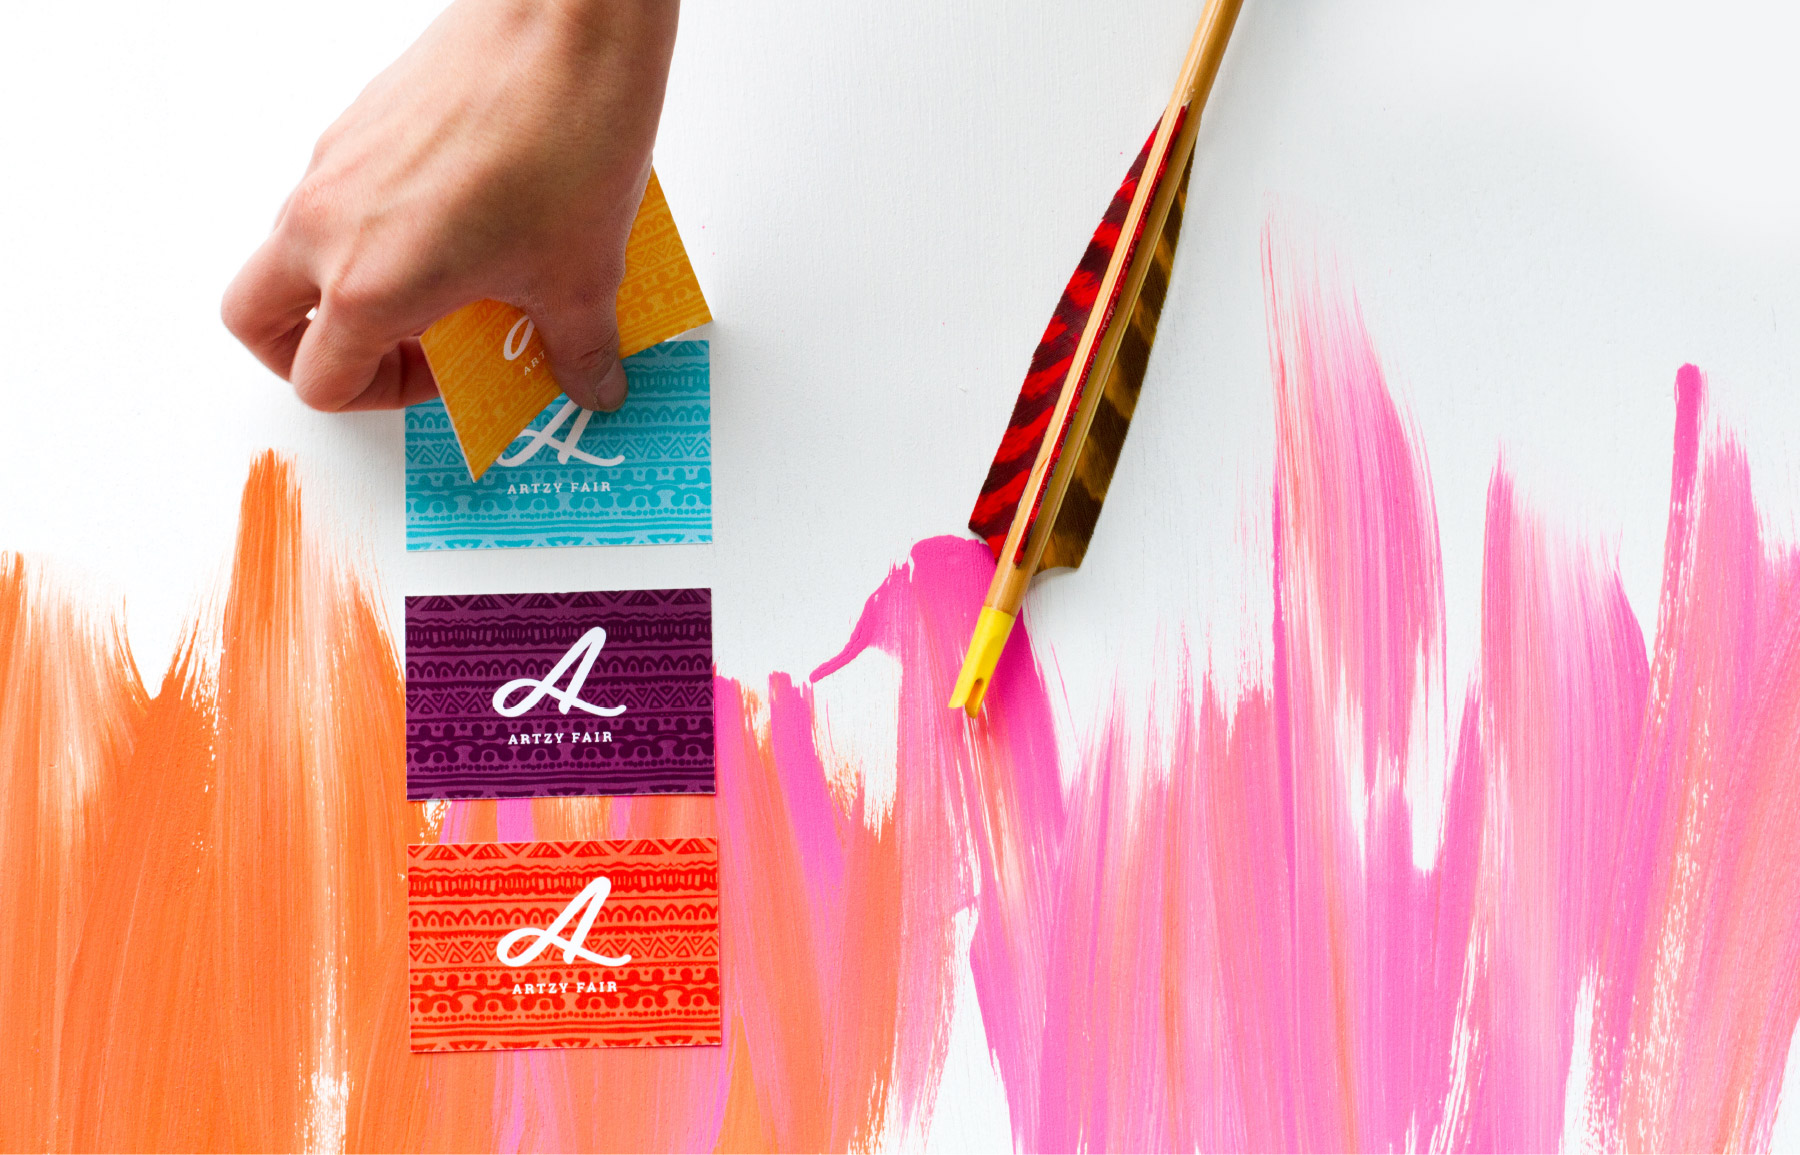 Arts and crafts company business cards